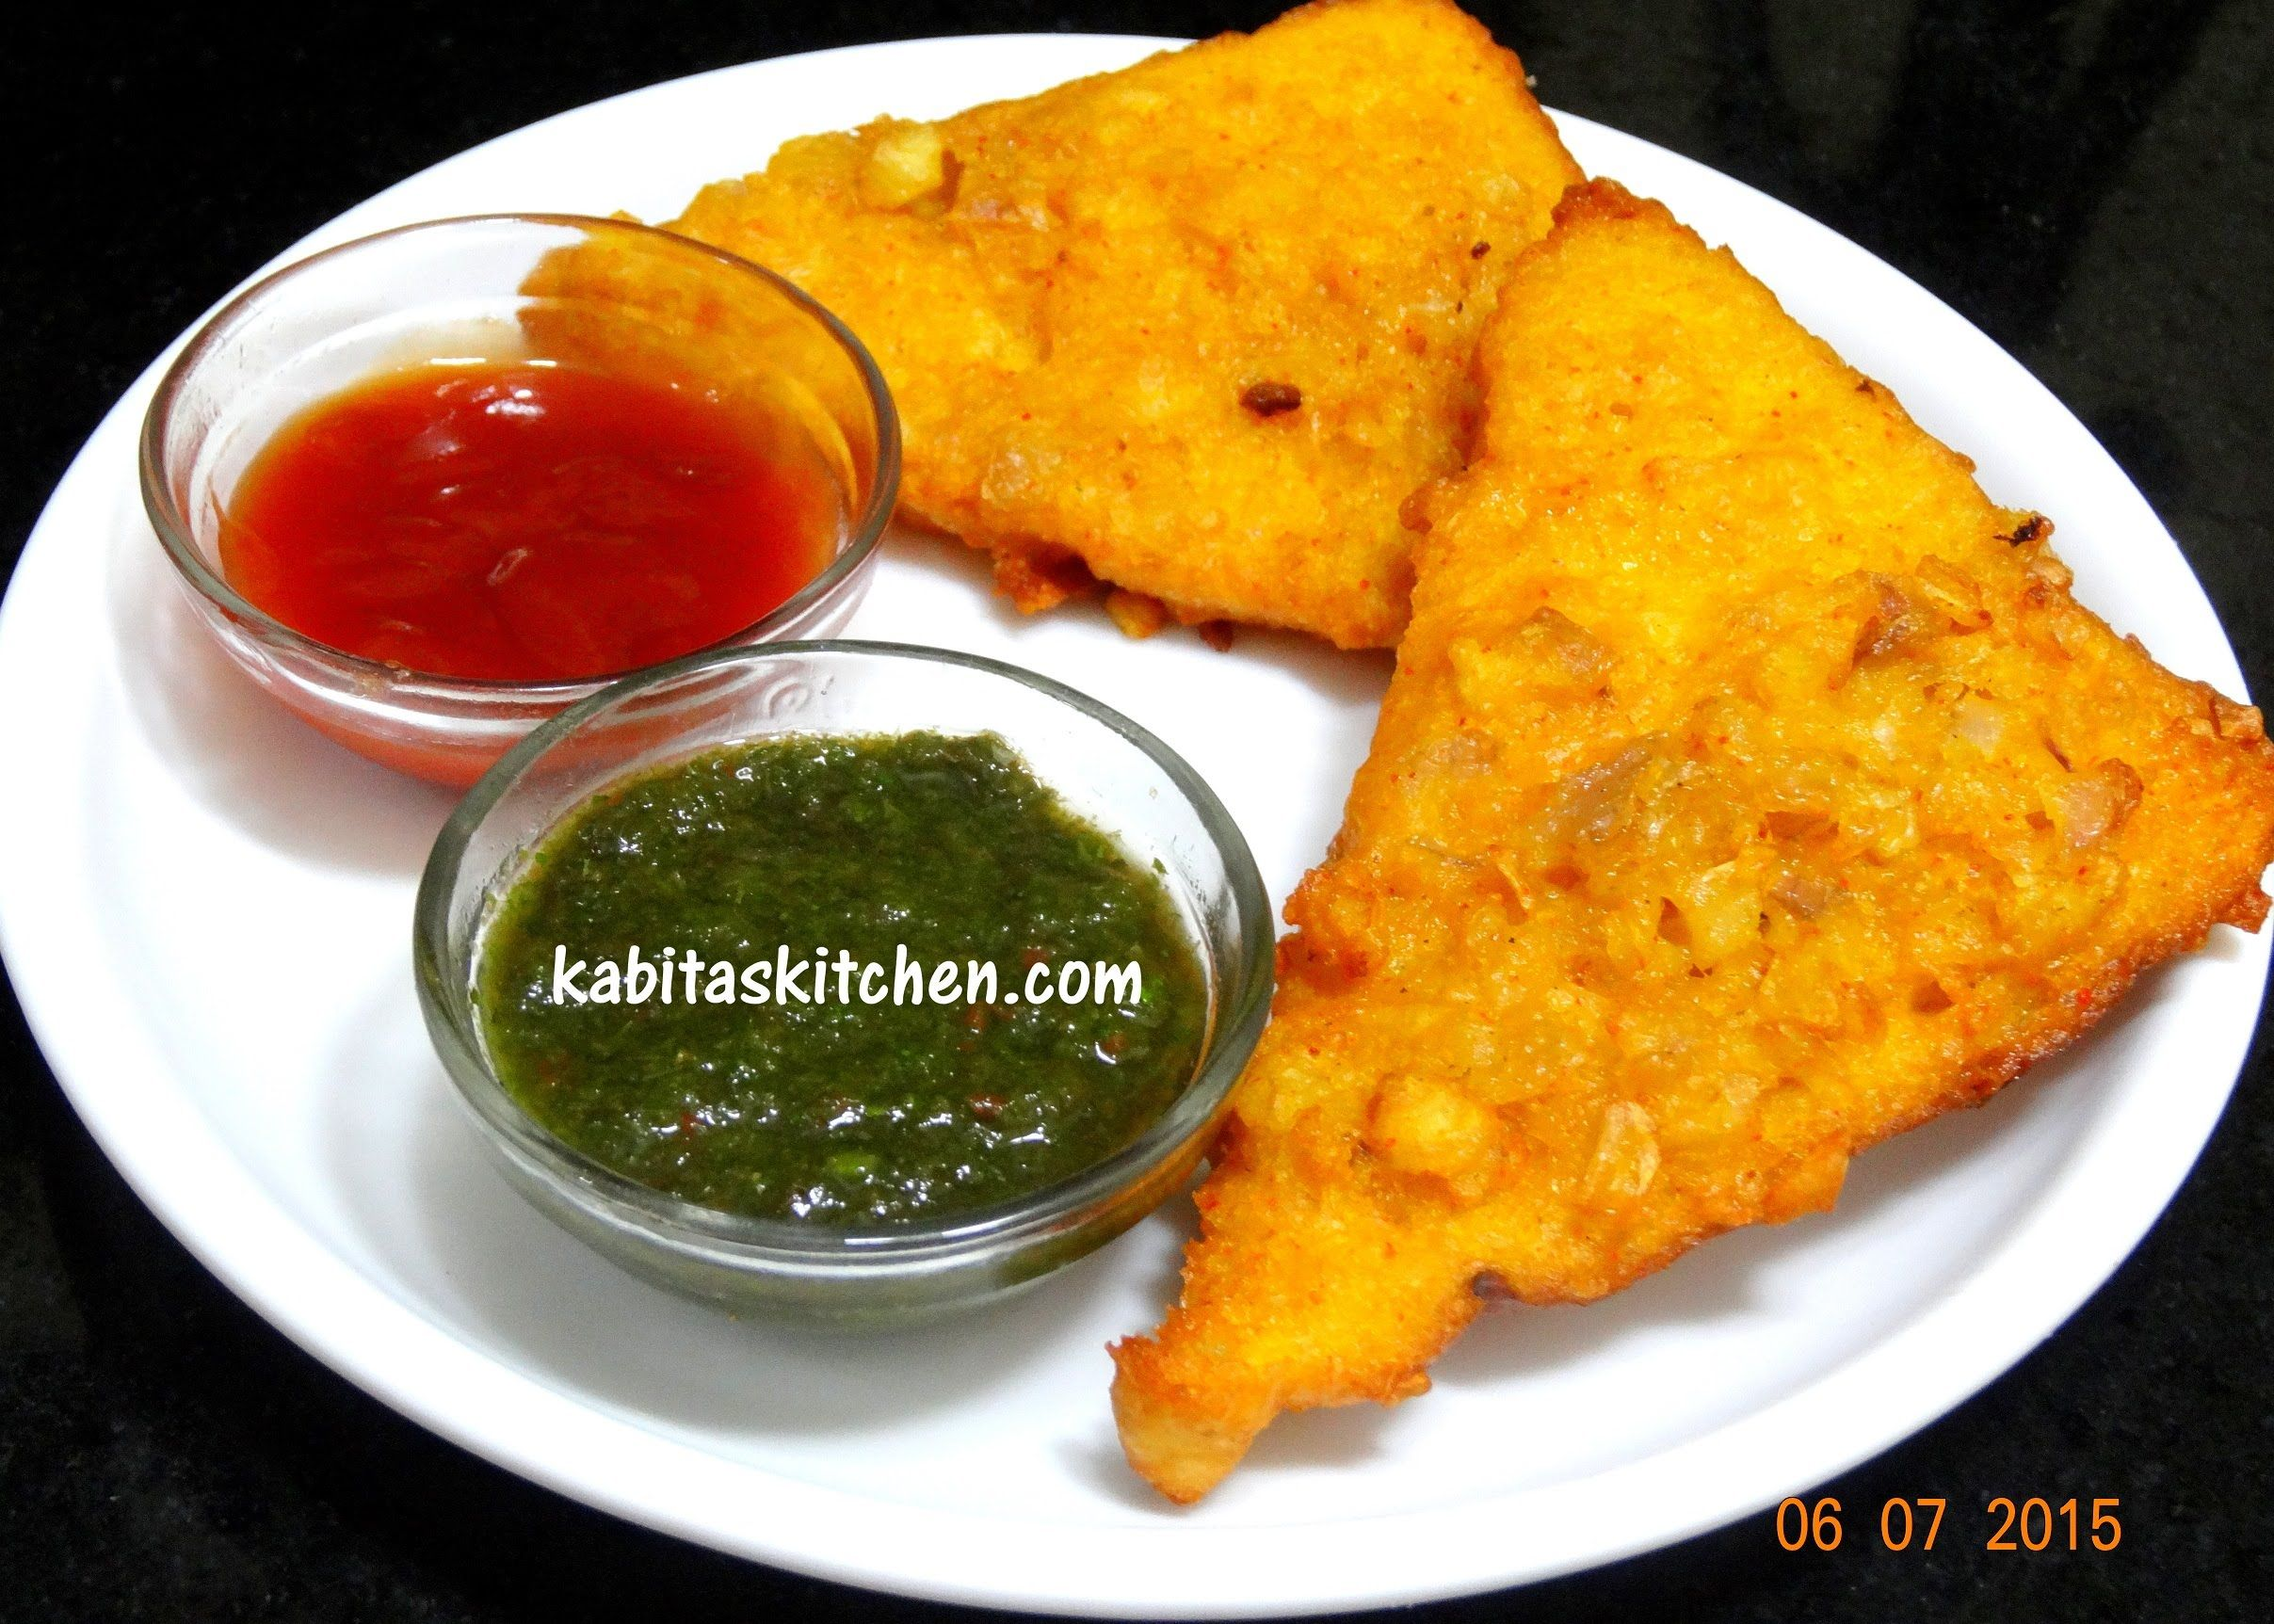 The 25 best quick indian snacks ideas on pinterest mashed bread pakora recipe quick bread fritters easy and quick indian snacks recipe forumfinder Choice Image